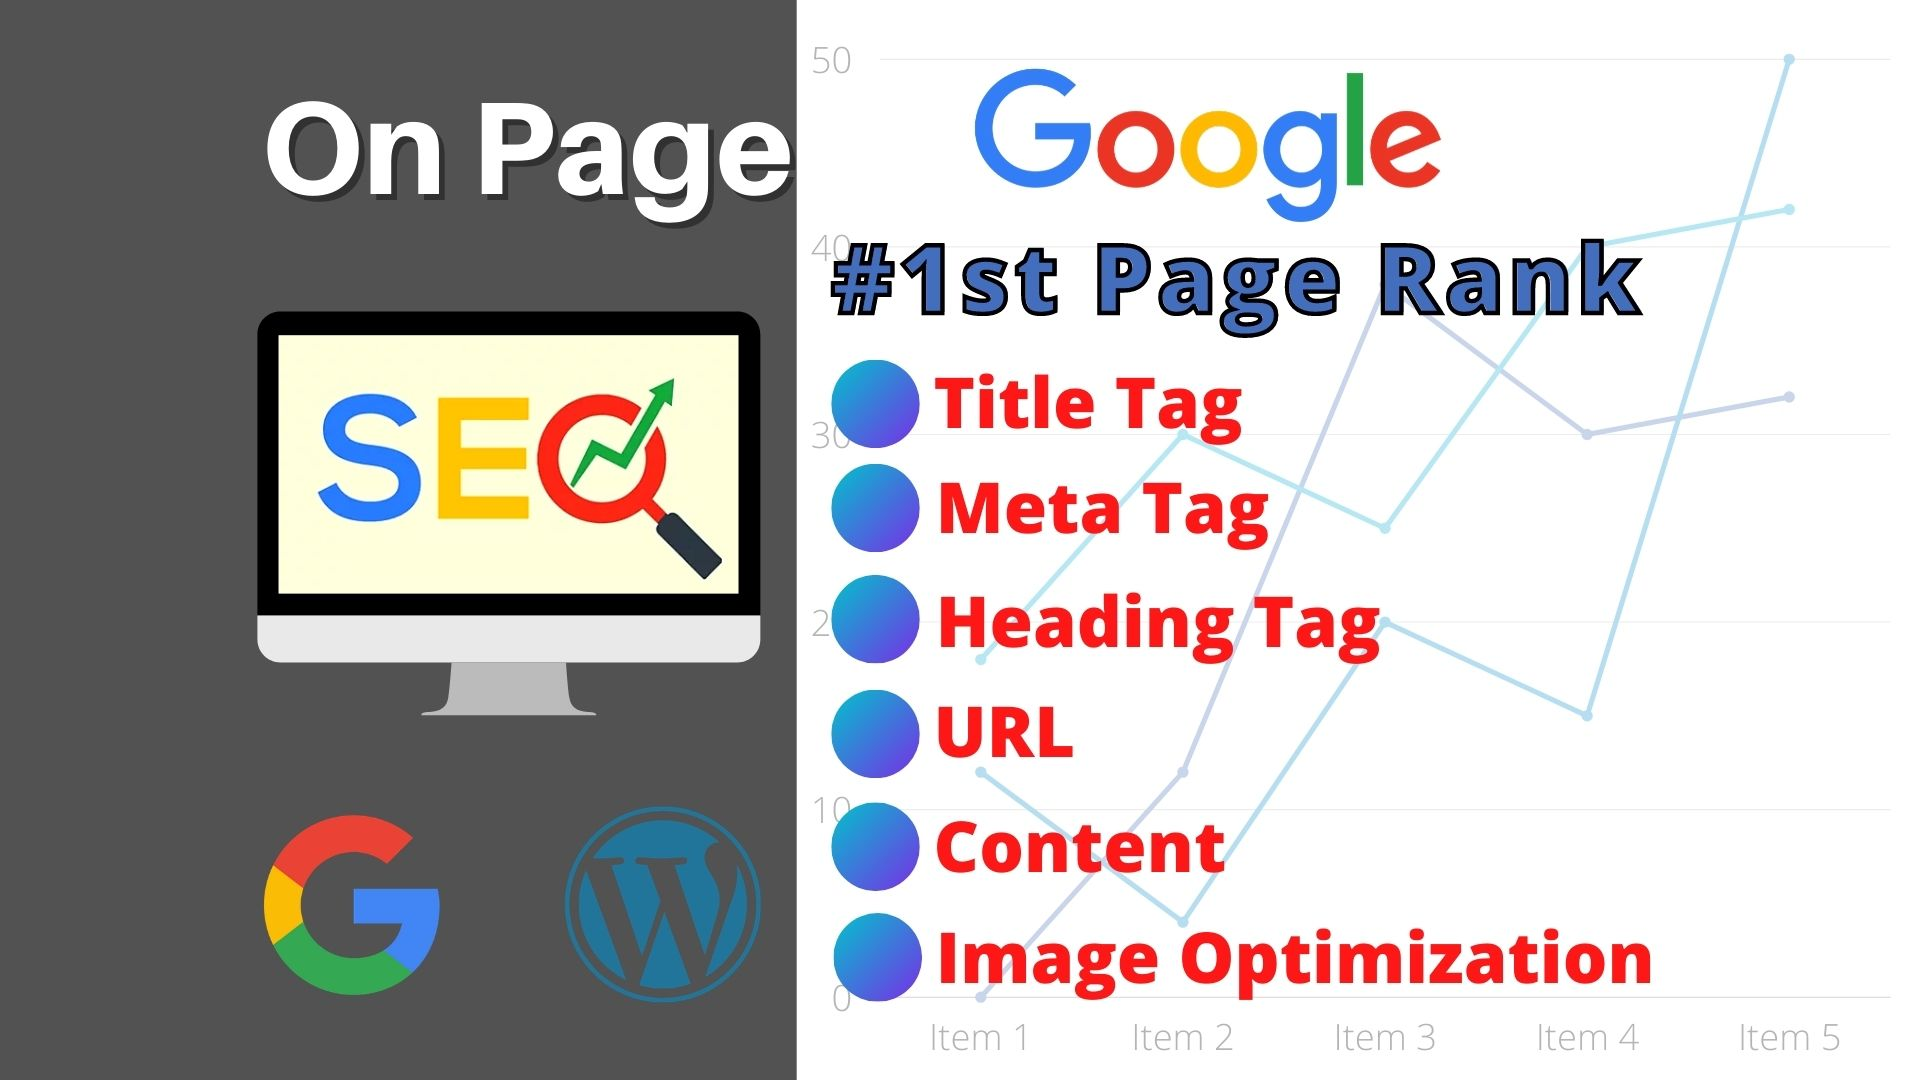 I will do complete on page SEO for google 1st page rank